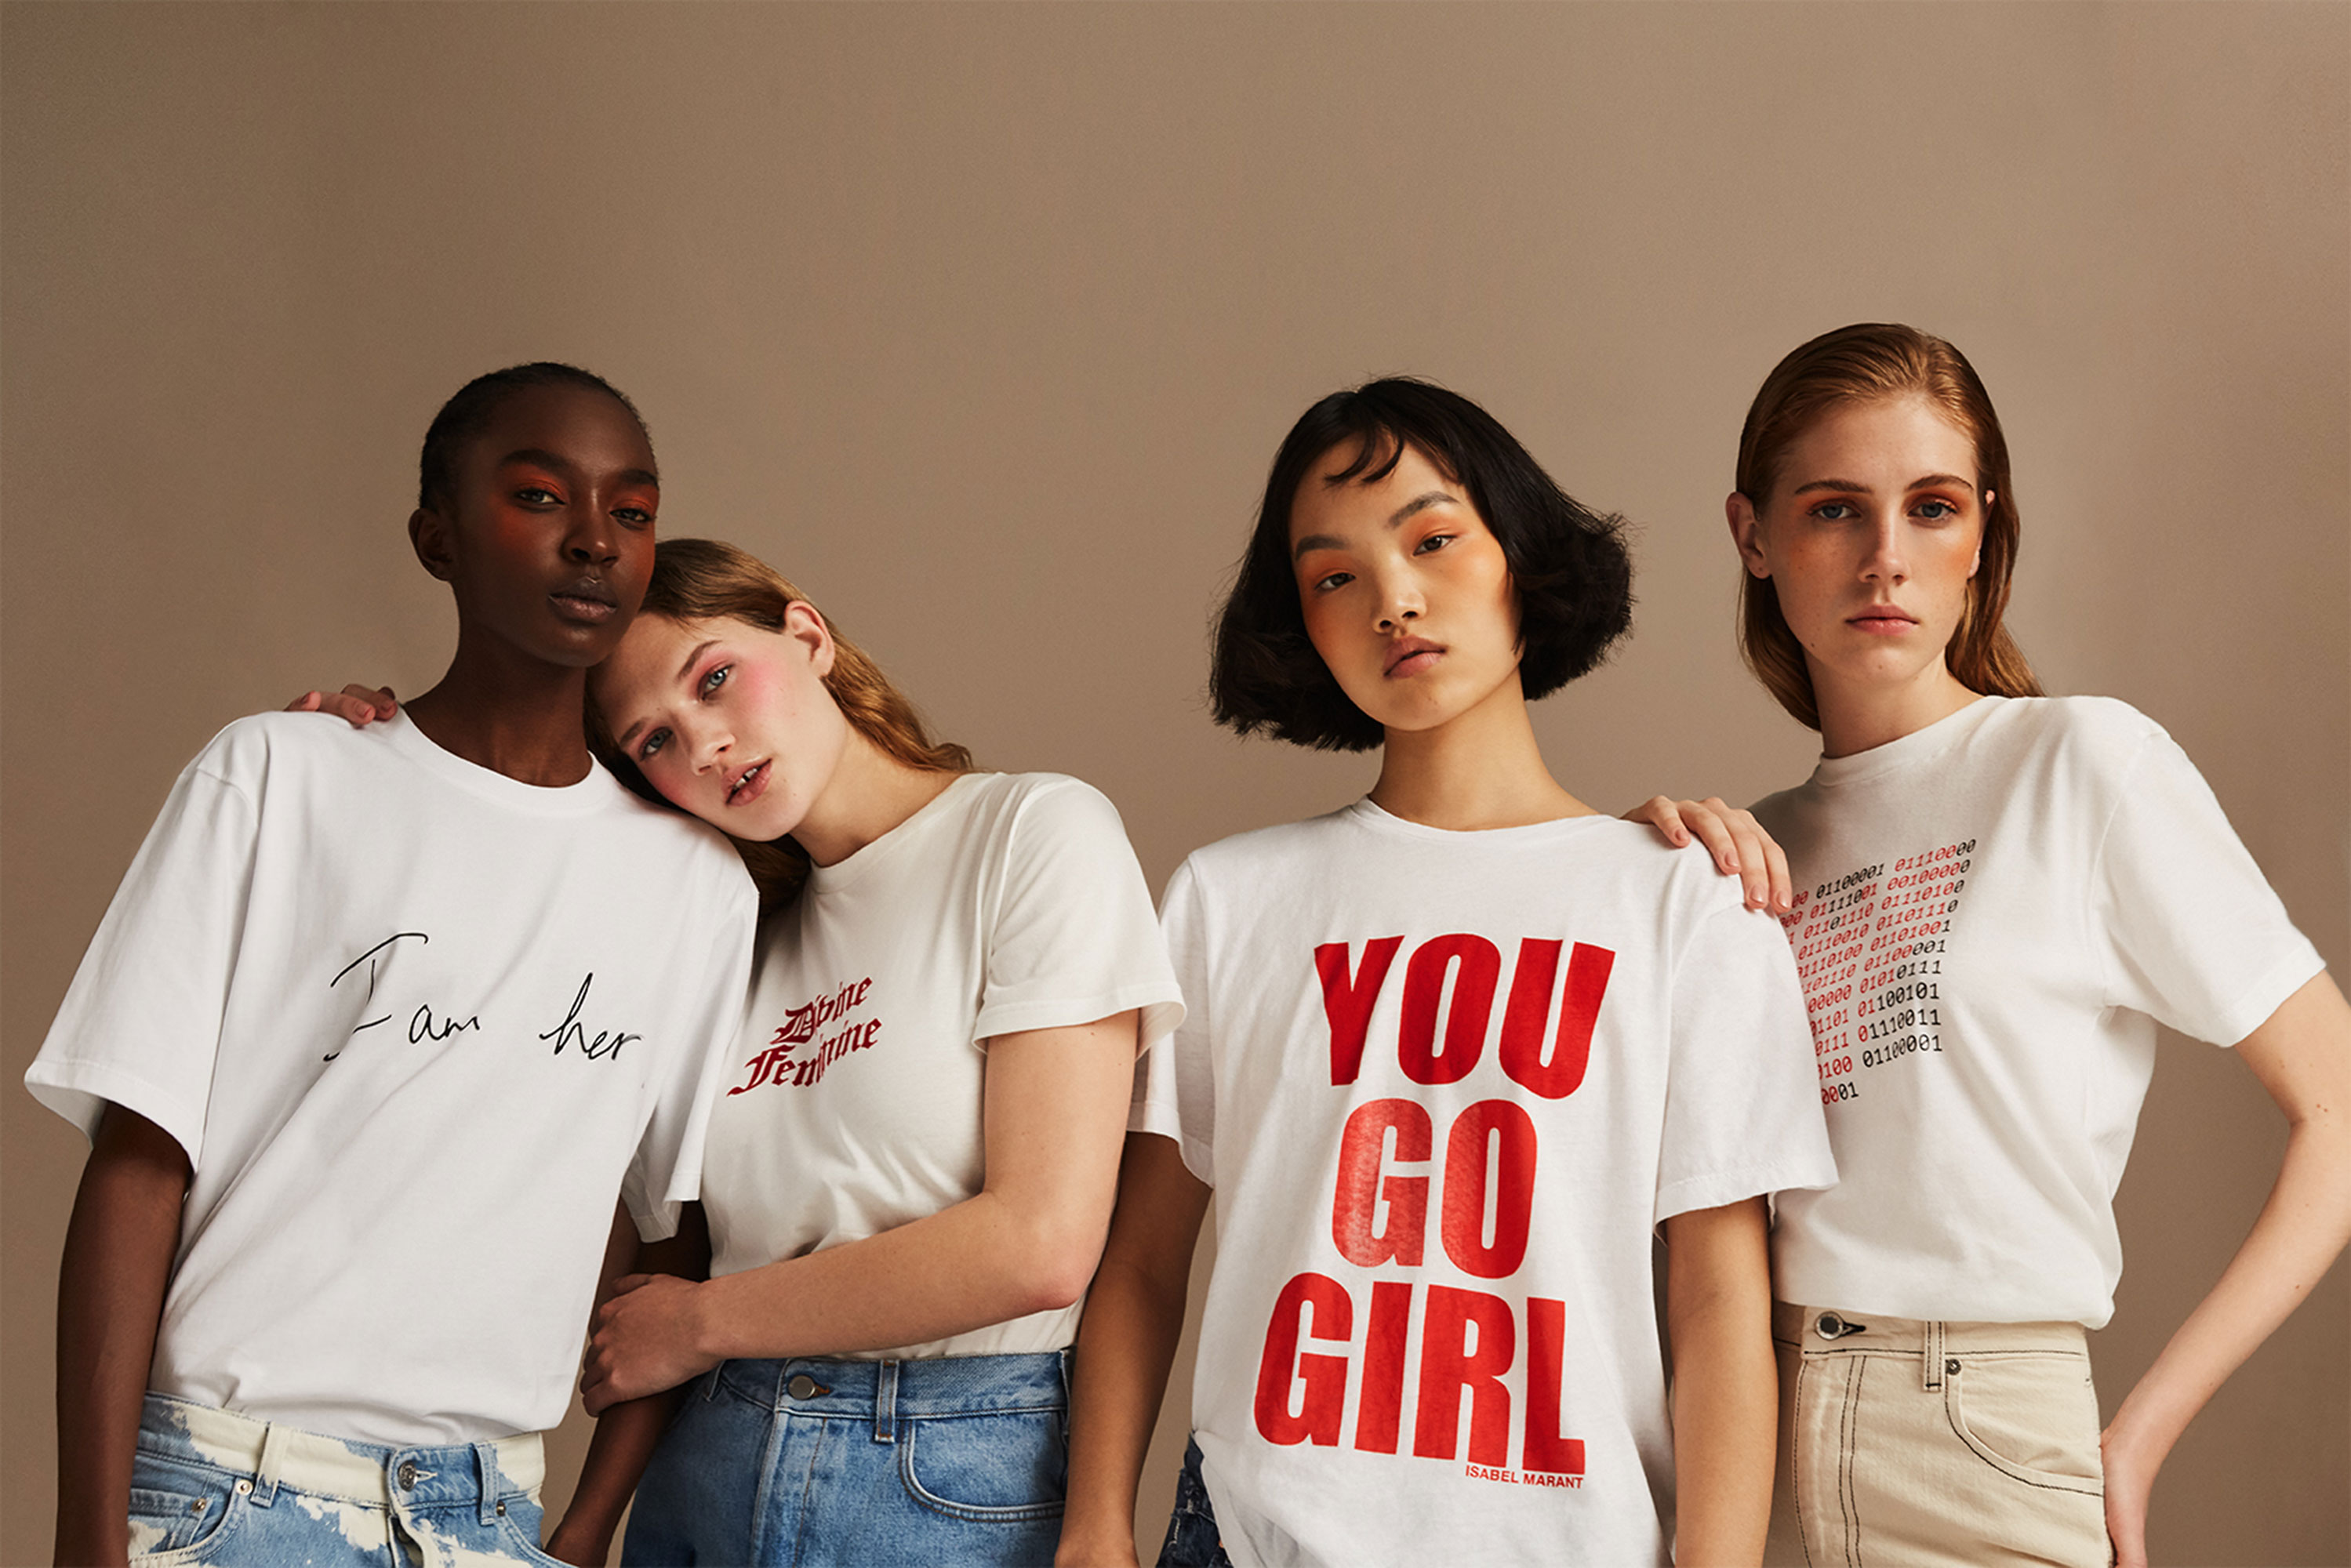 Net-a-Porter Is Here With a Star-Studded T-Shirt Collection for International Women's Day - Net-a-Porter Is Here With a Star-Studded T-Shirt Collection for International Women's Day